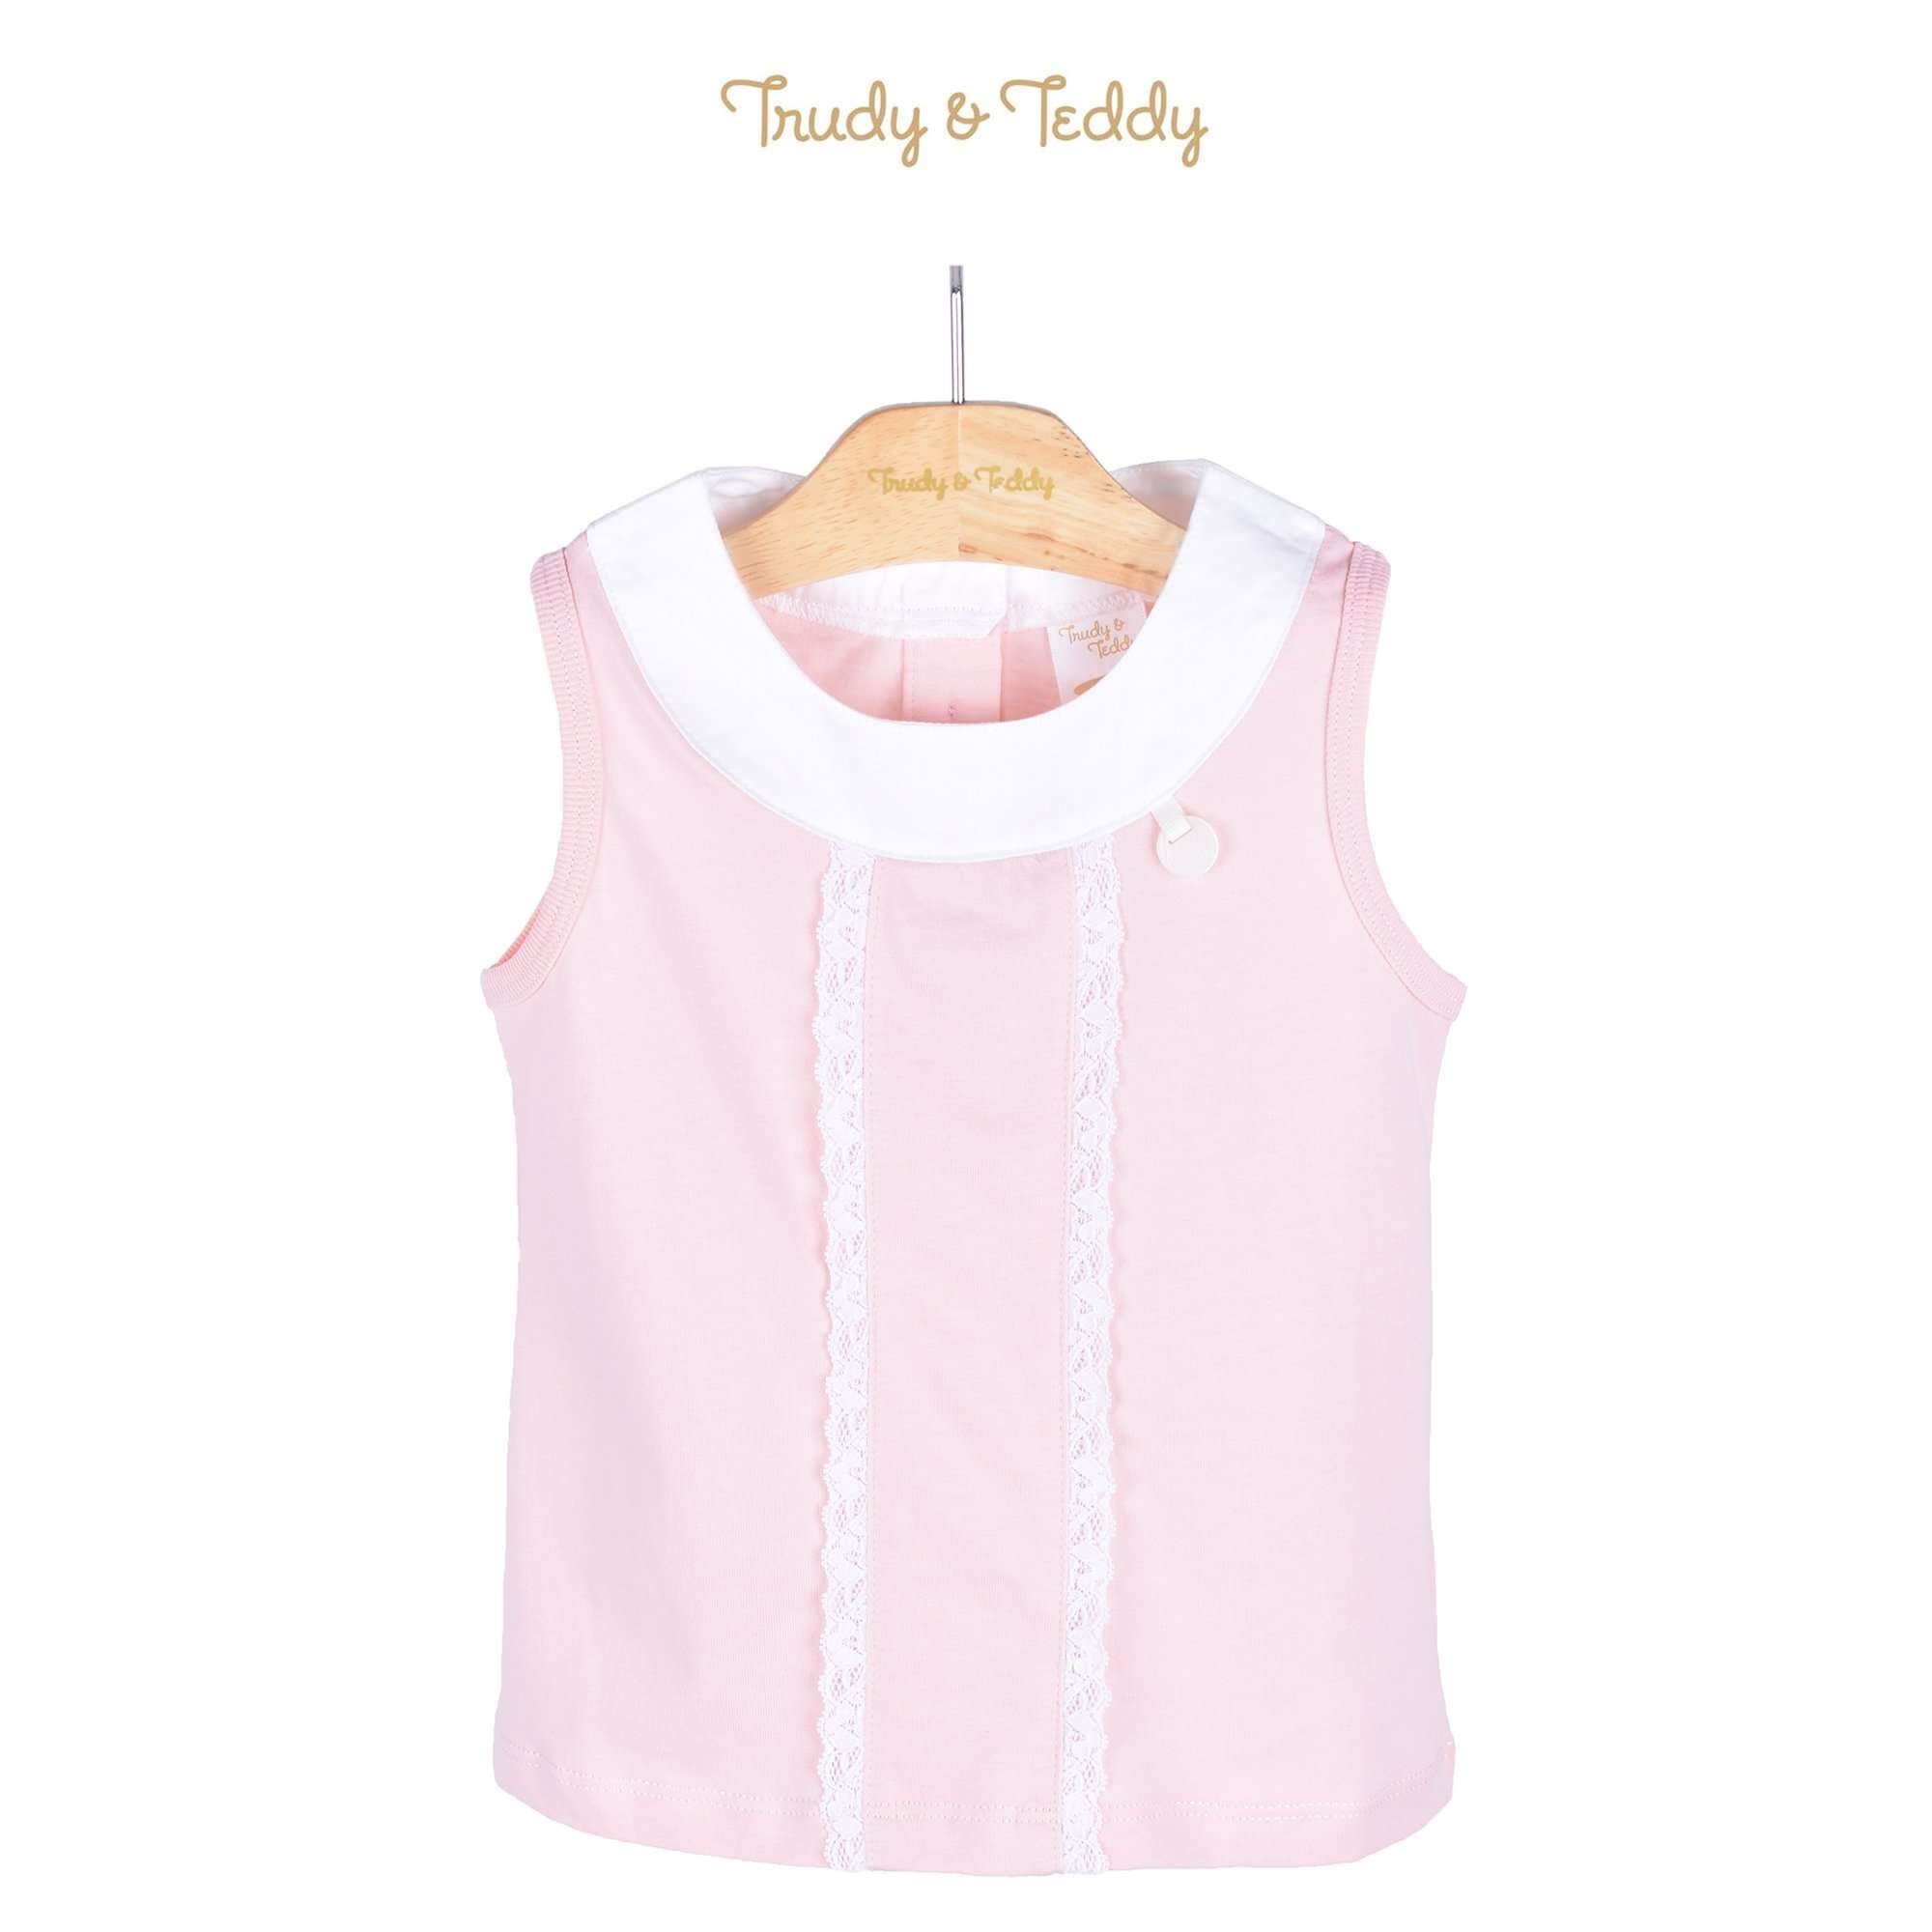 Trudy & Teddy Toddler Girl Sleeveless Tee 815122-101 : Buy Trudy & Teddy online at CMG.MY